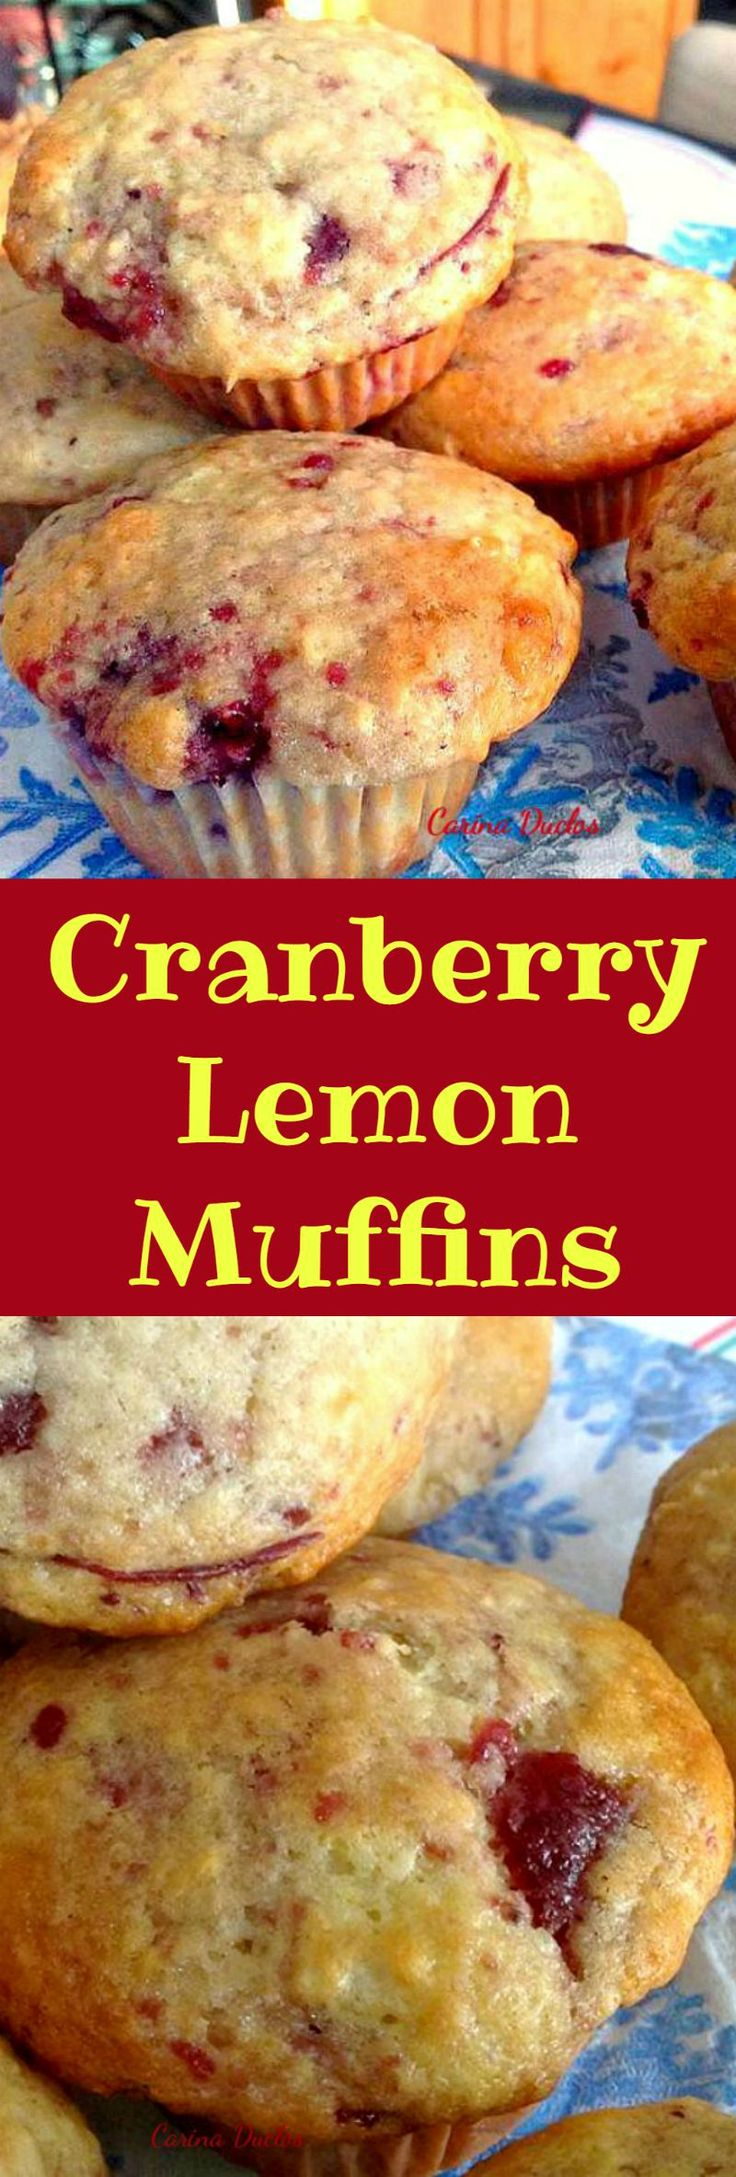 Cranberry Lemon Muffins...... Incredibly easy recipe and of course very tasty! | Lovefoodies.com